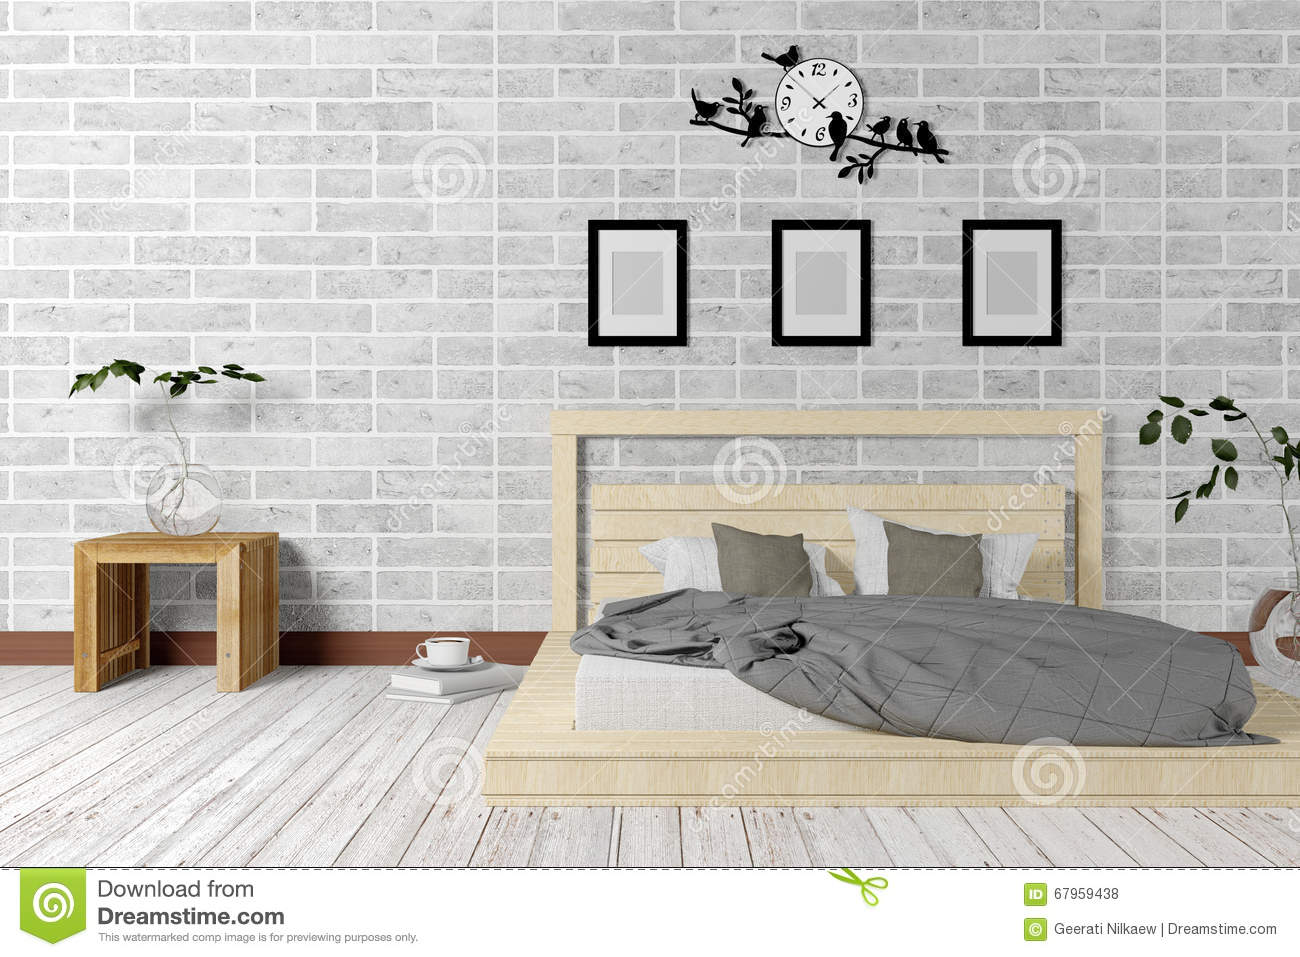 Bedroom with decorative plants royalty free stock image for Minimalist living bedroom